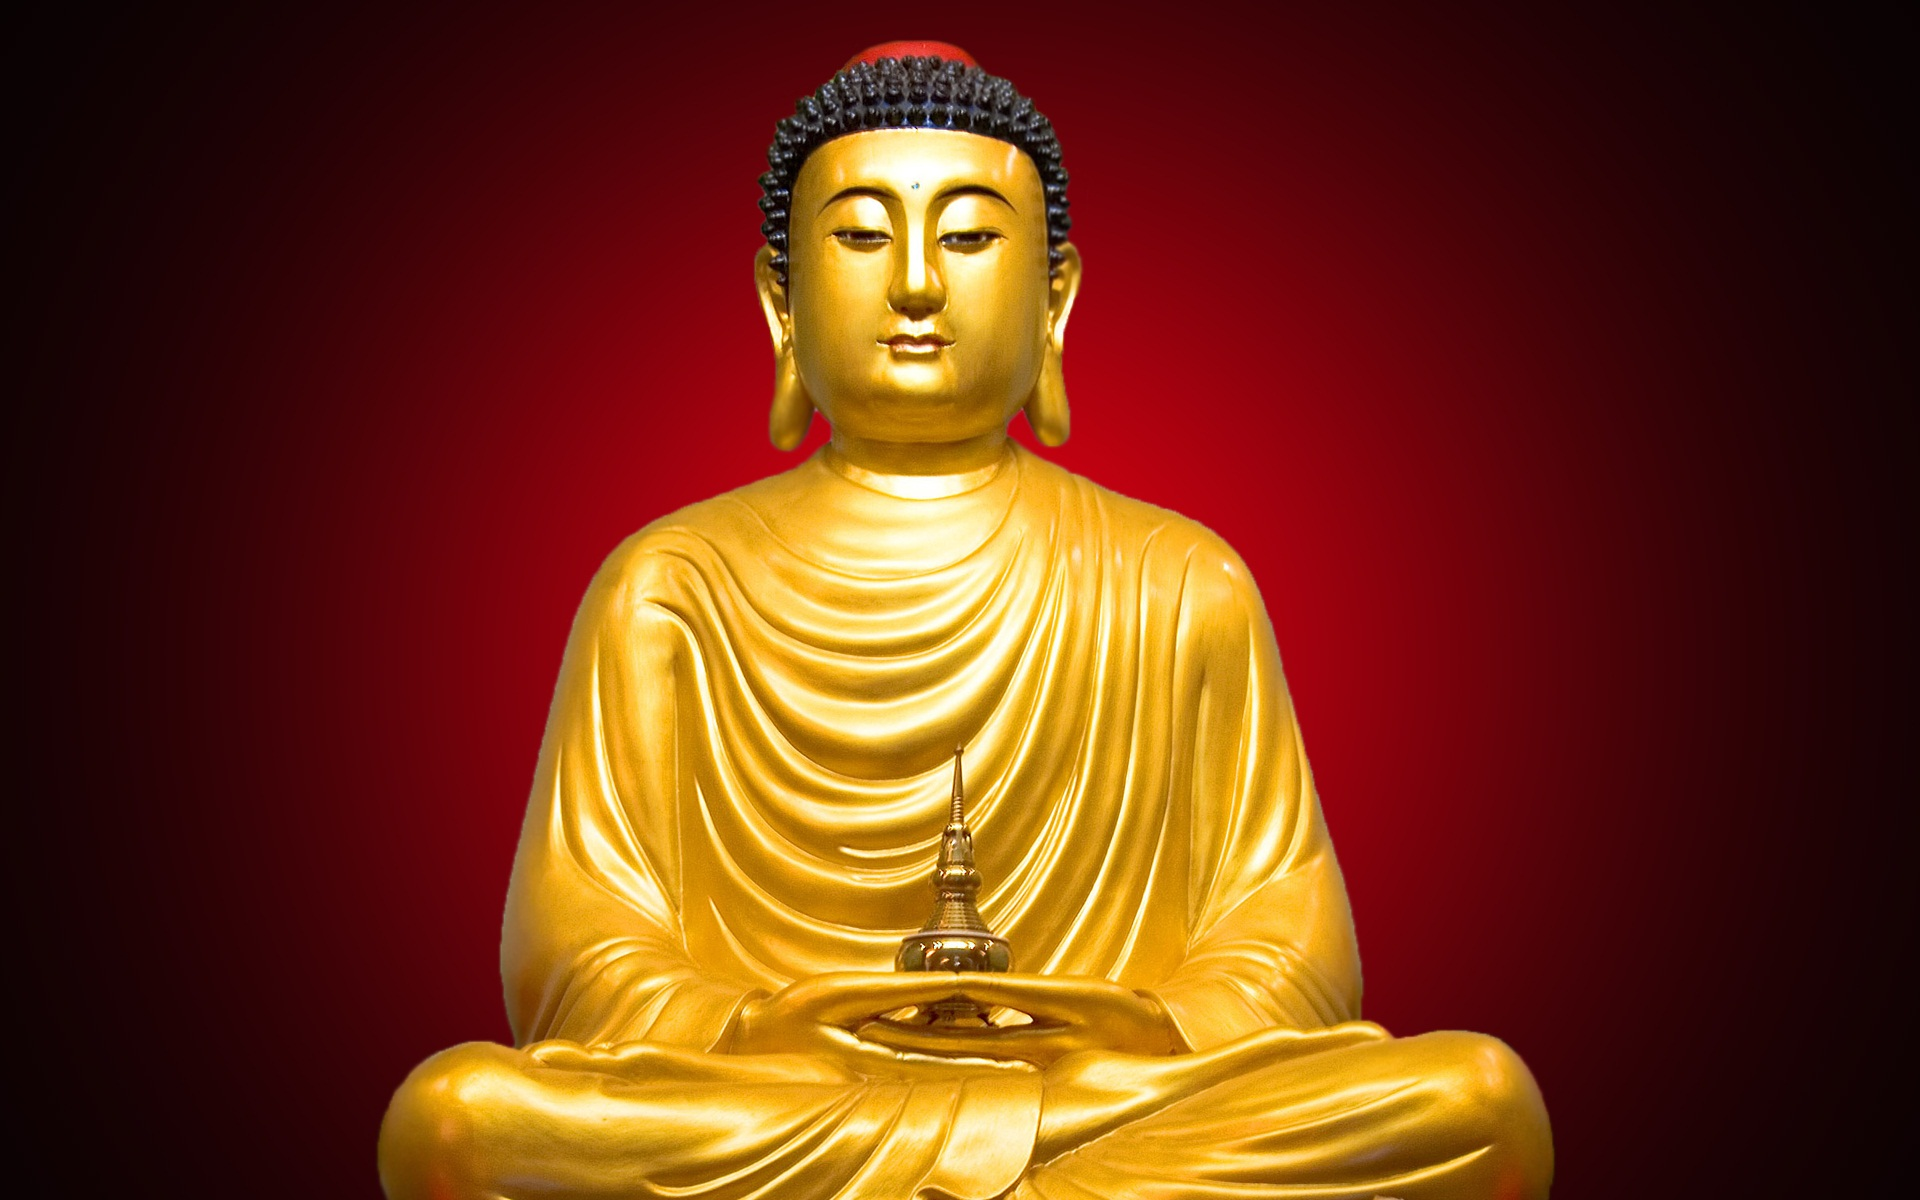 Download Lord Buddha Images Buddha 3d Wallpaper Widescreen 21 43 Dzbc Org